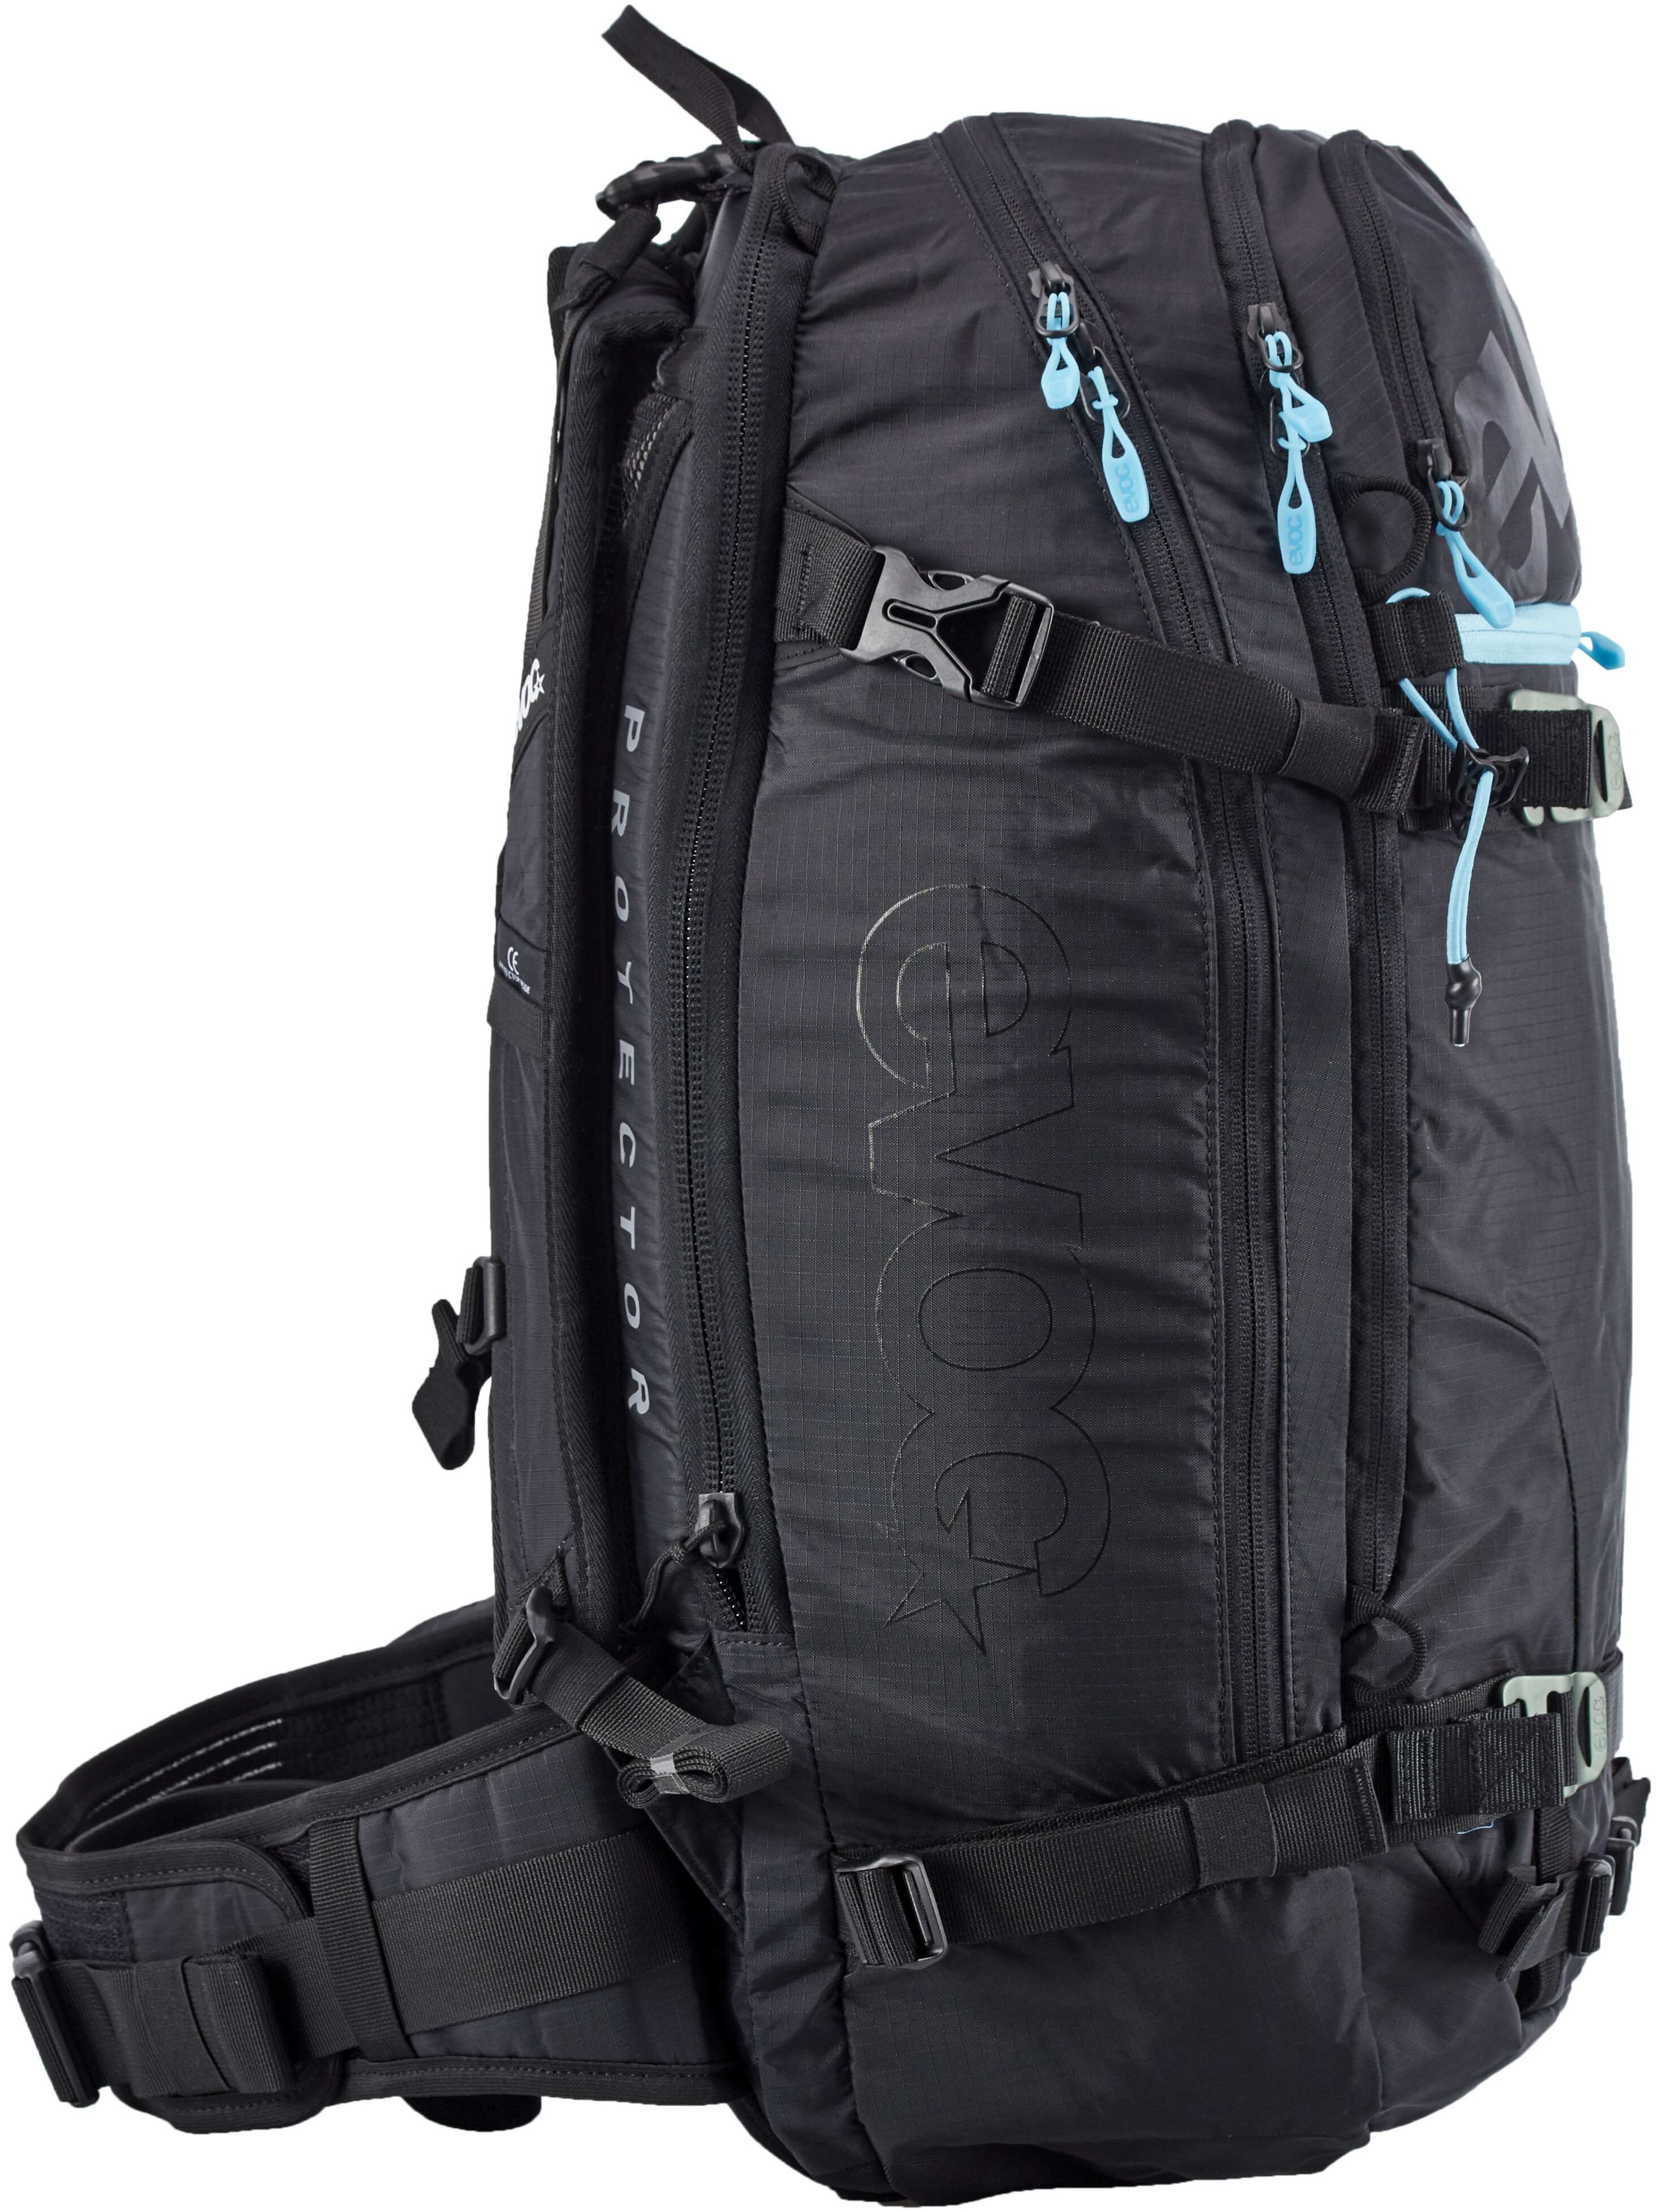 Buy bergans backcountry guide 30l from outnorth.